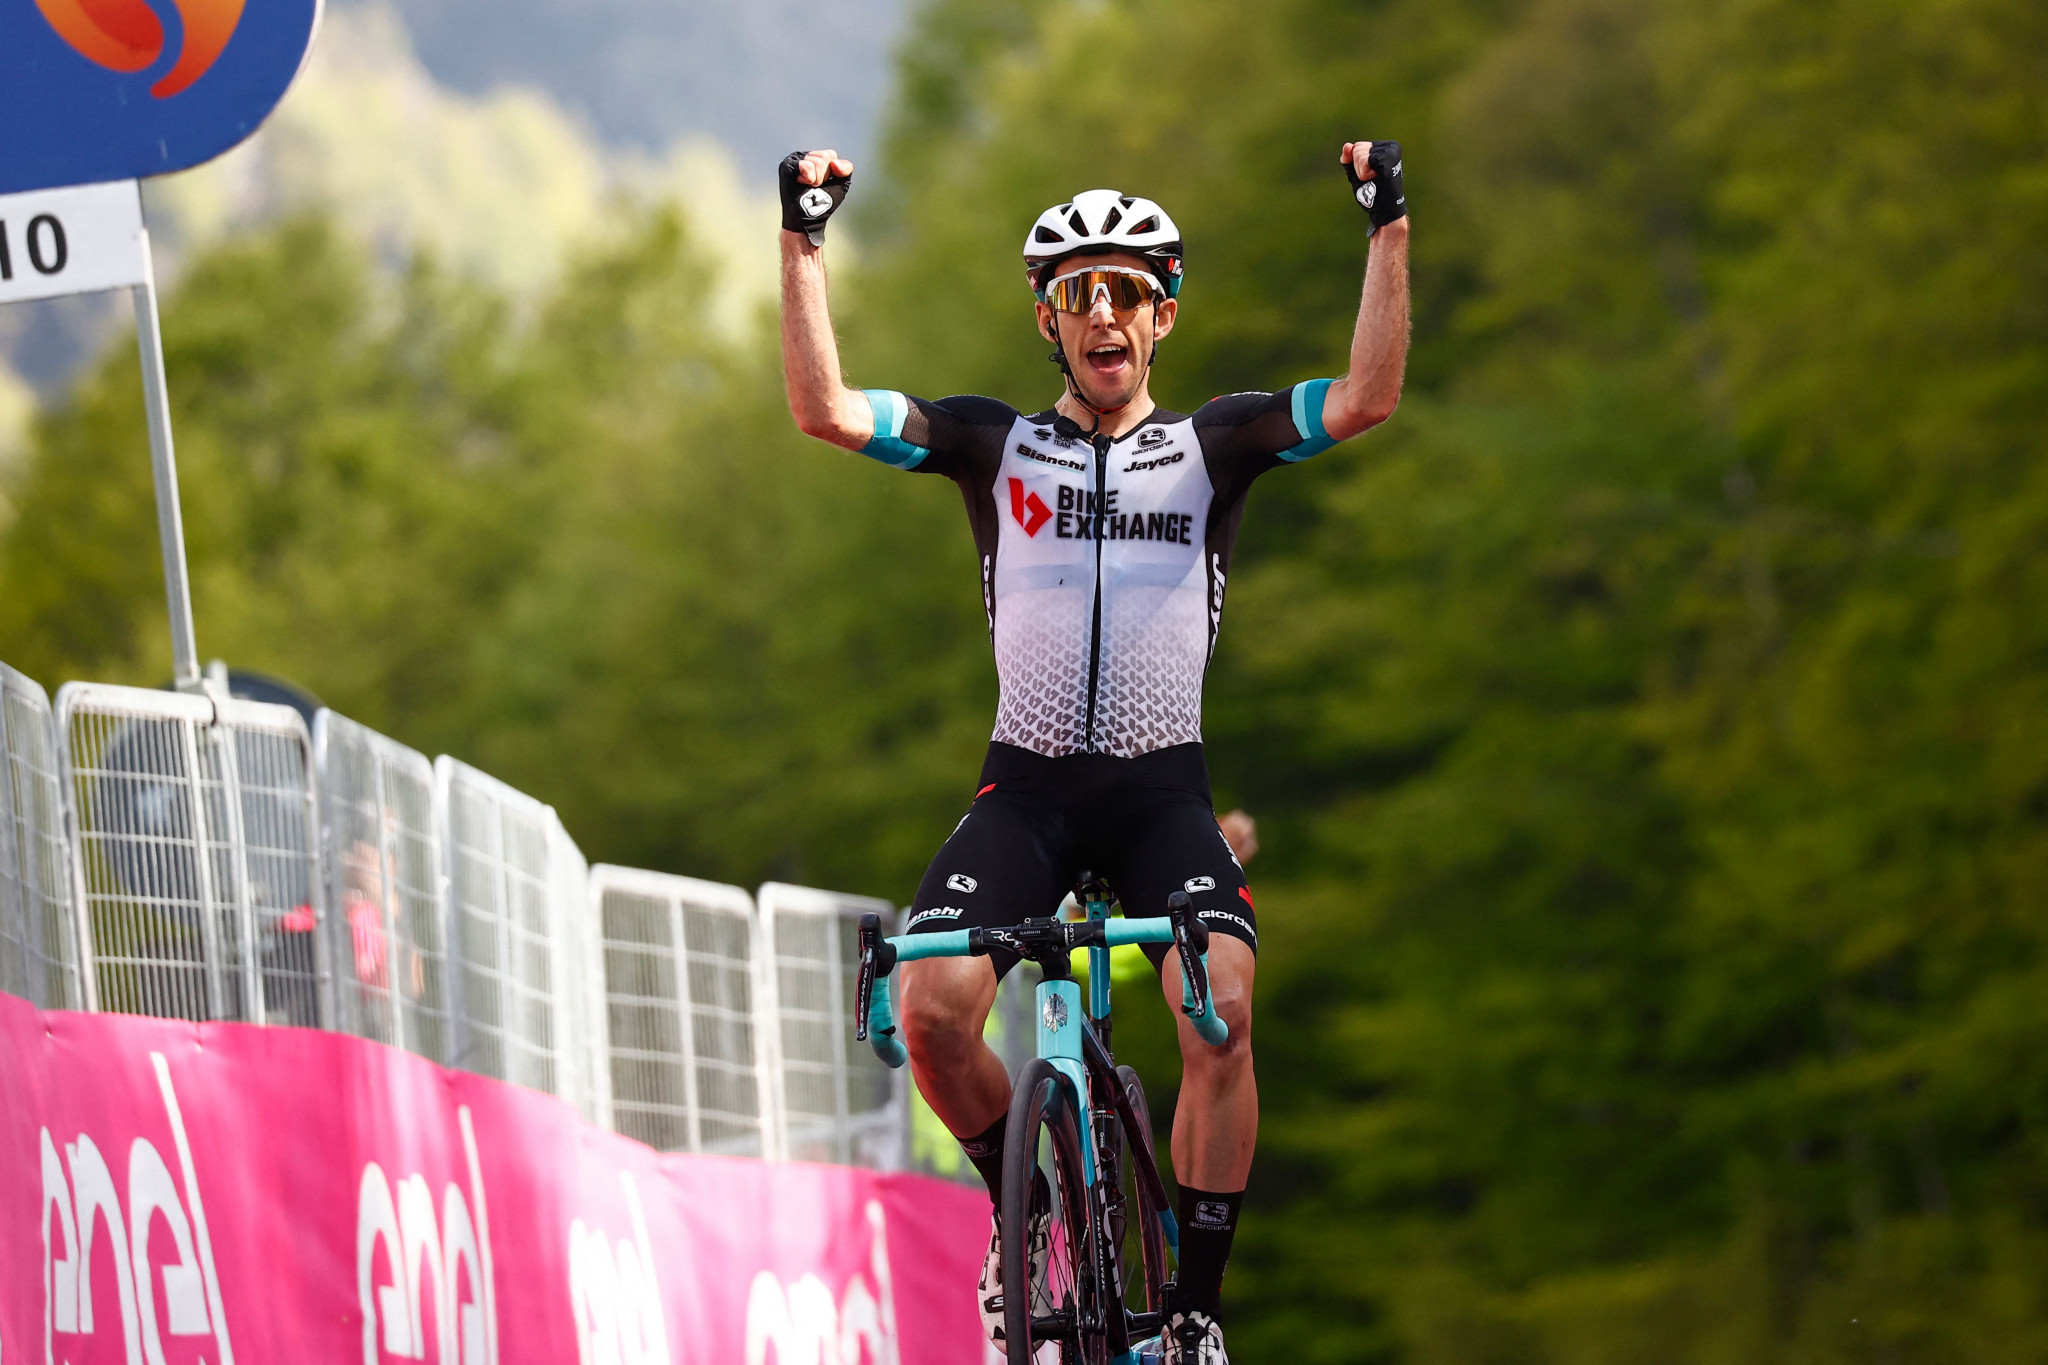 Yates wins stage 19 of Giro d'Italia as race leader Bernal remains in control